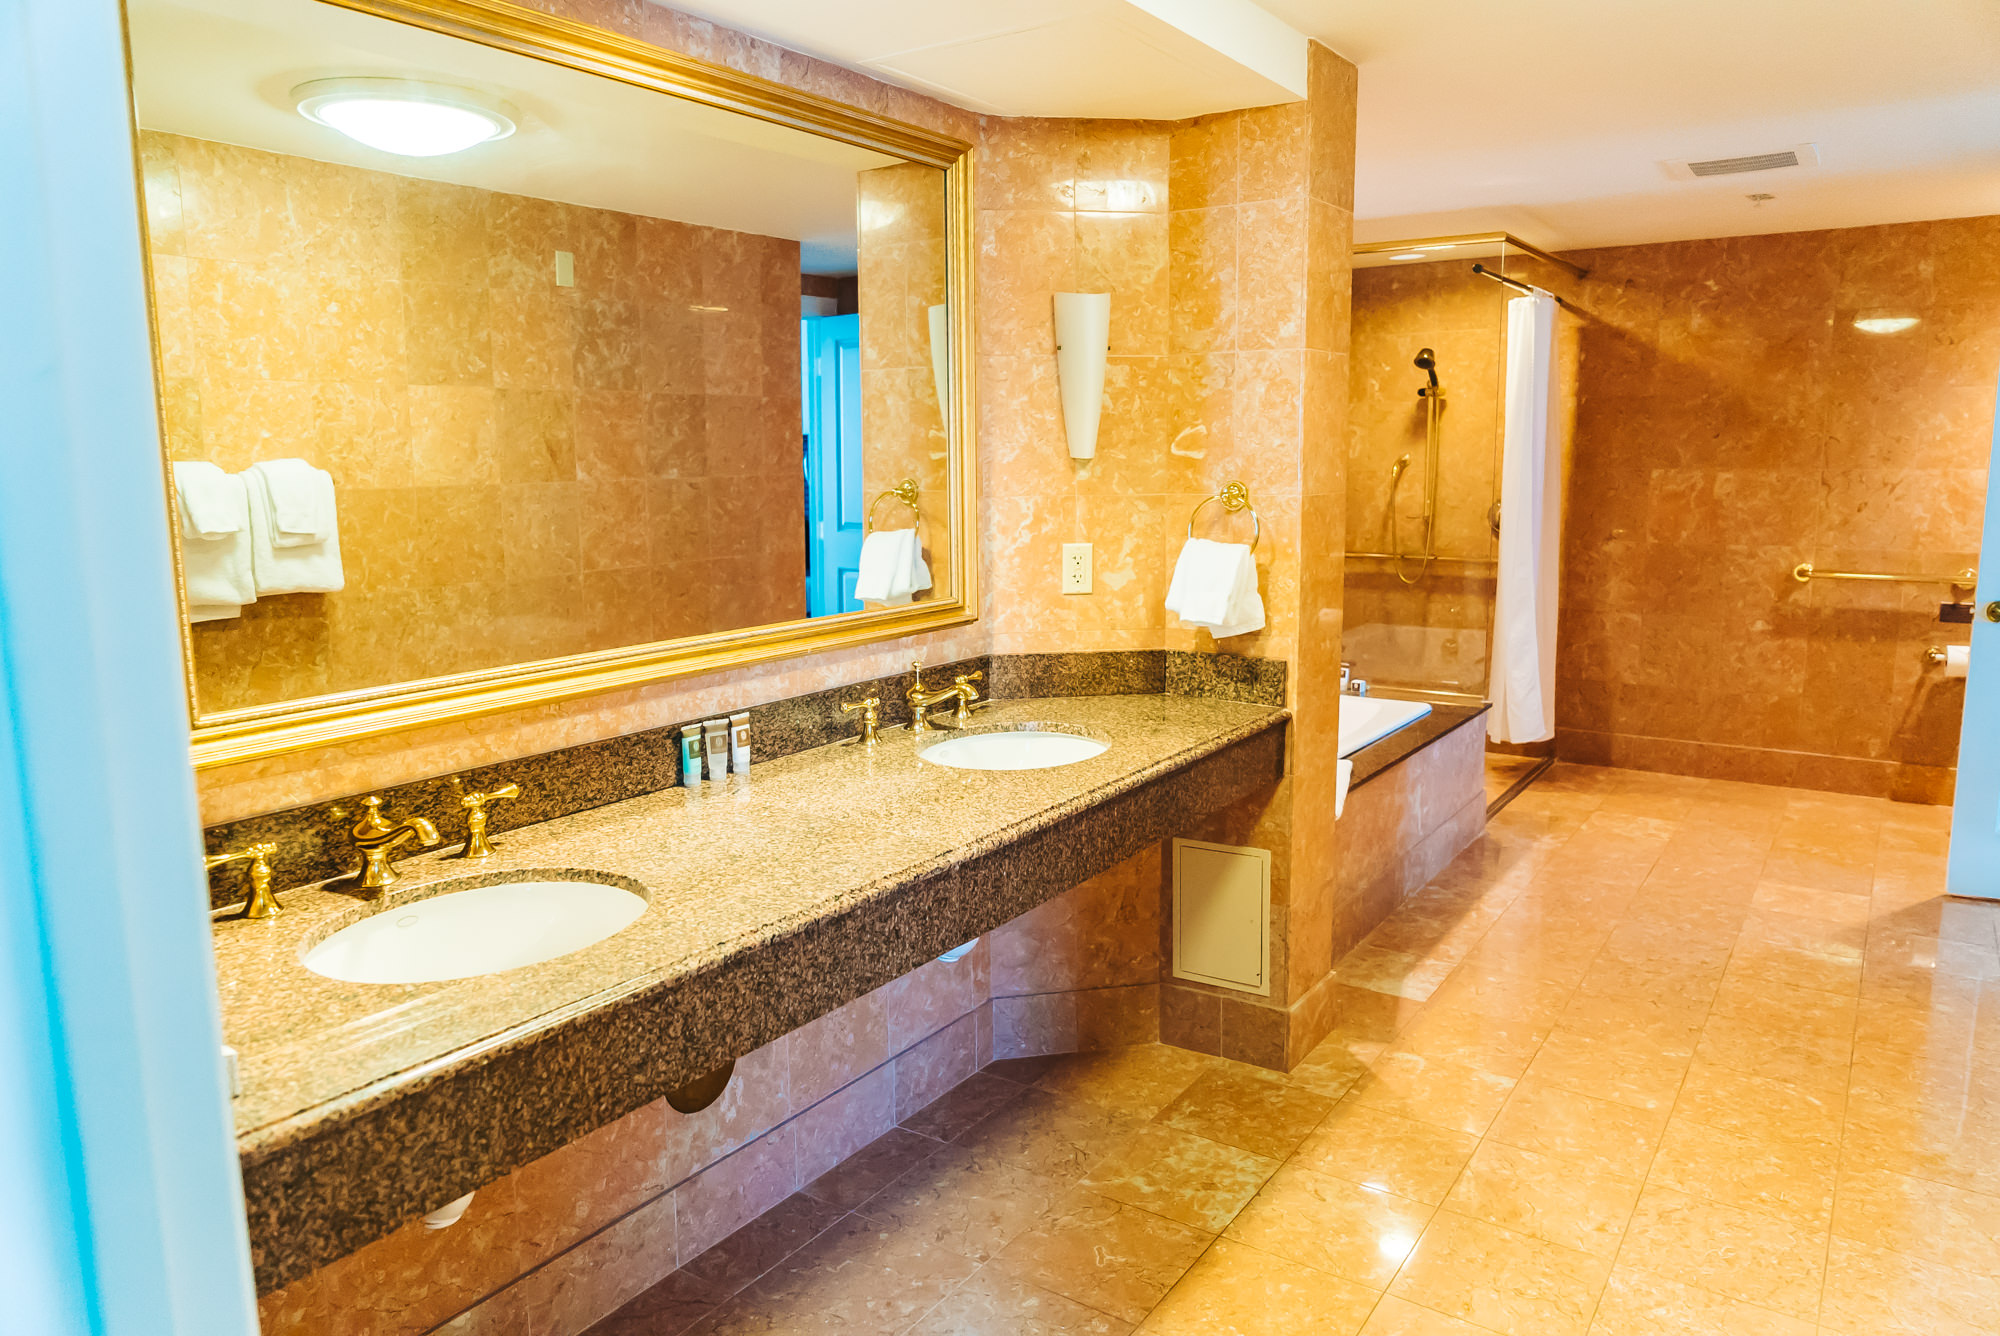 Super spacious bathroom with two sinks, bathtub and shower